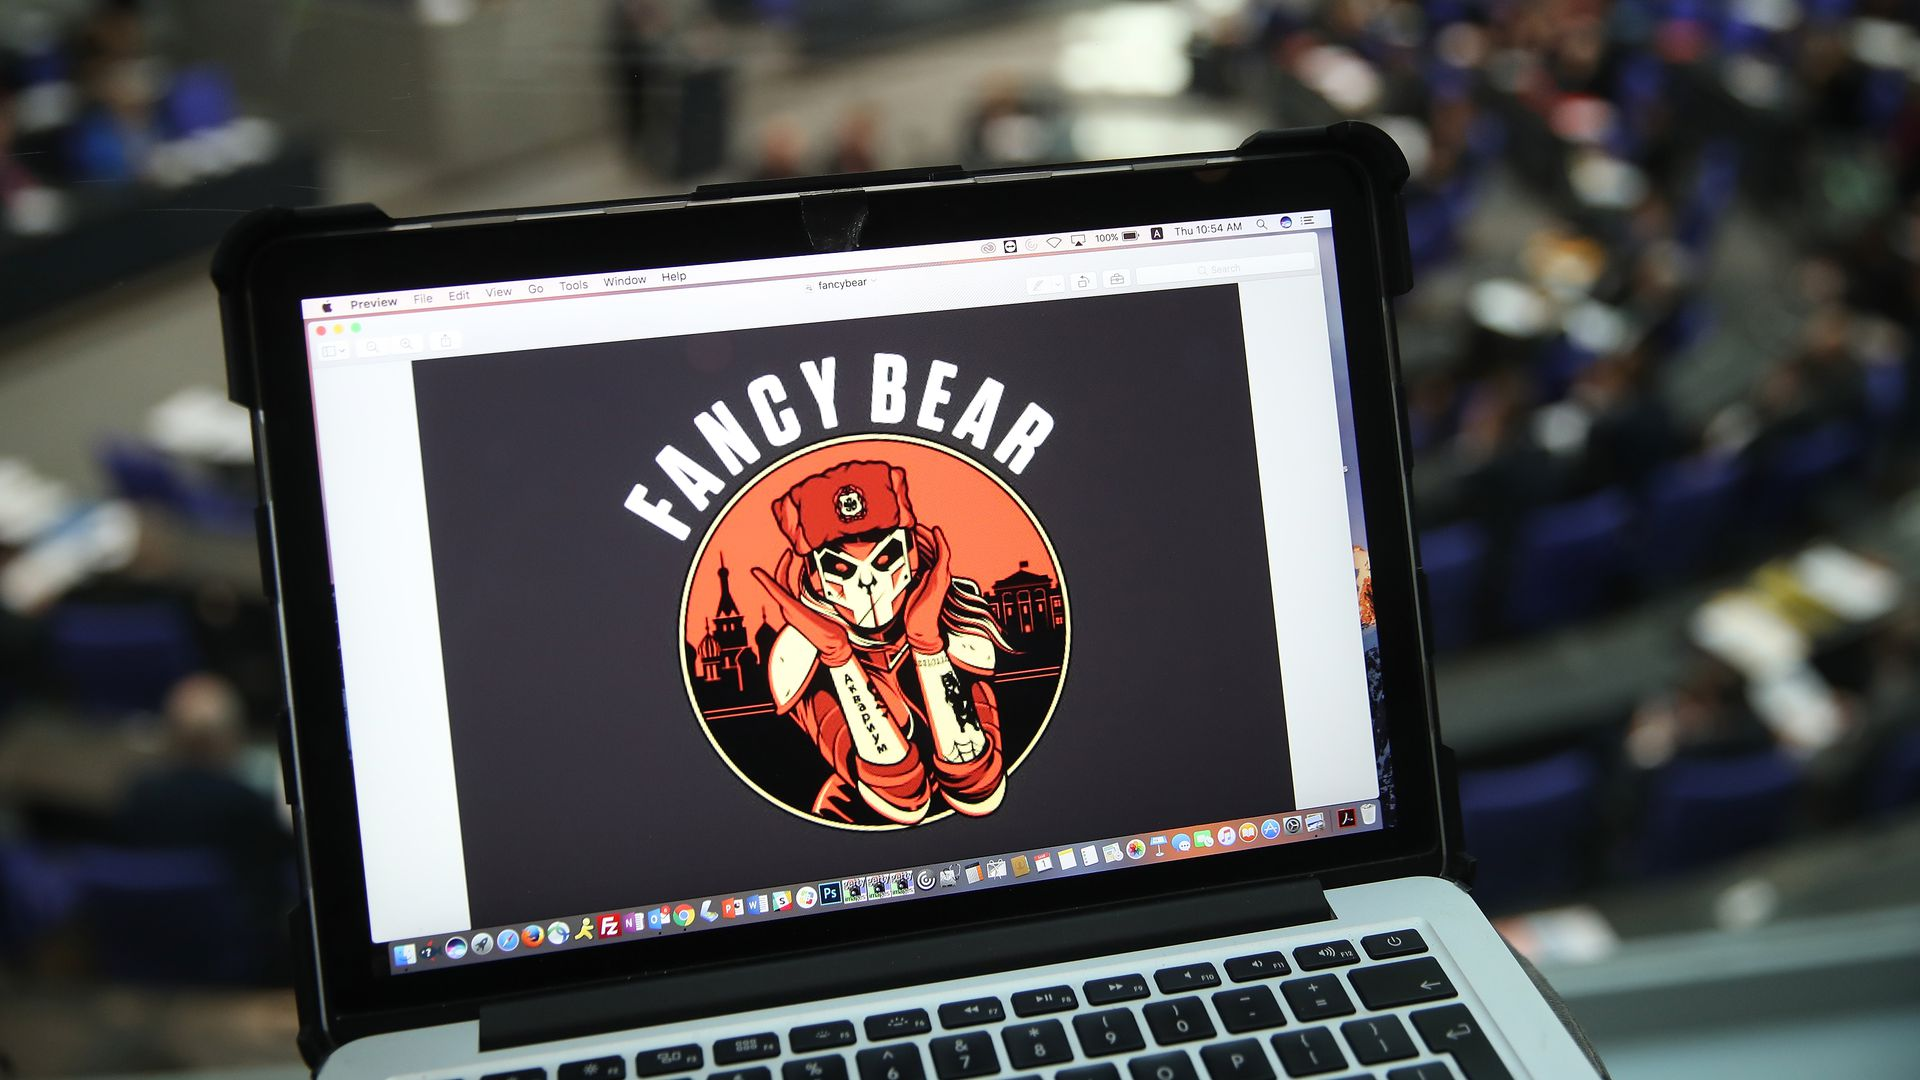 Laptop showing a logo for suspected-Russian hackers Fancy Bear, designed by security company Crowdstrike